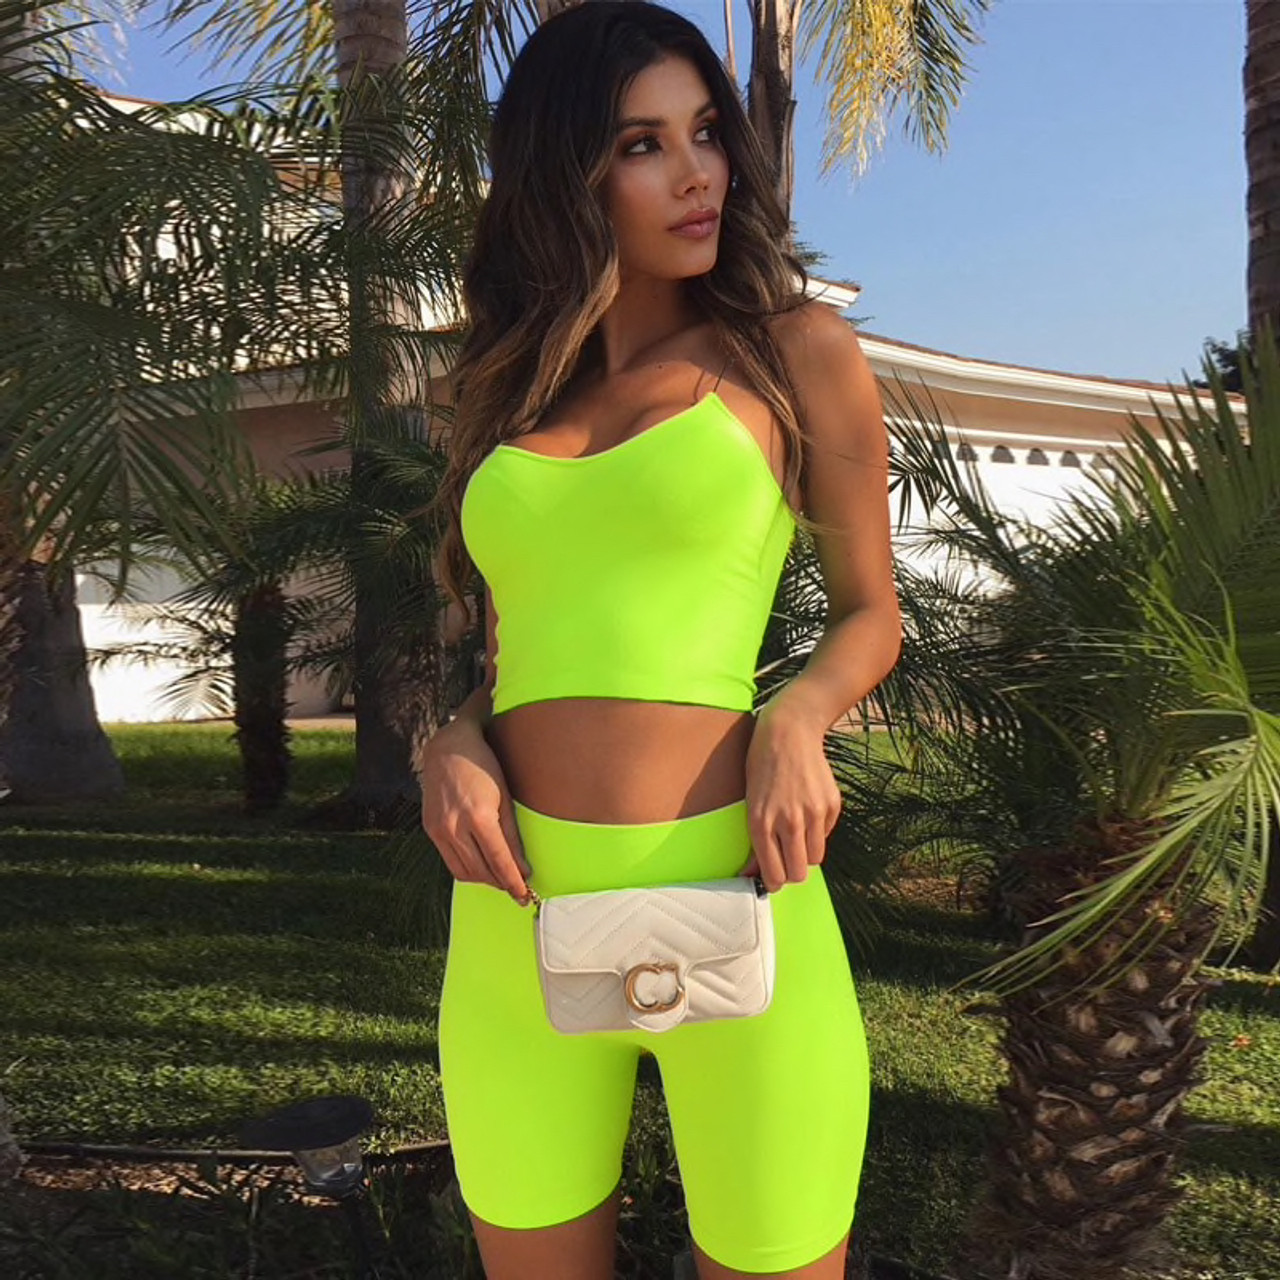 de7e6aab8dc1c Neon Green Fashion Women's Sets Camis Crop Tops Tank Summer Sexy Outfits  Two Pieces Set Casual Biker Shorts